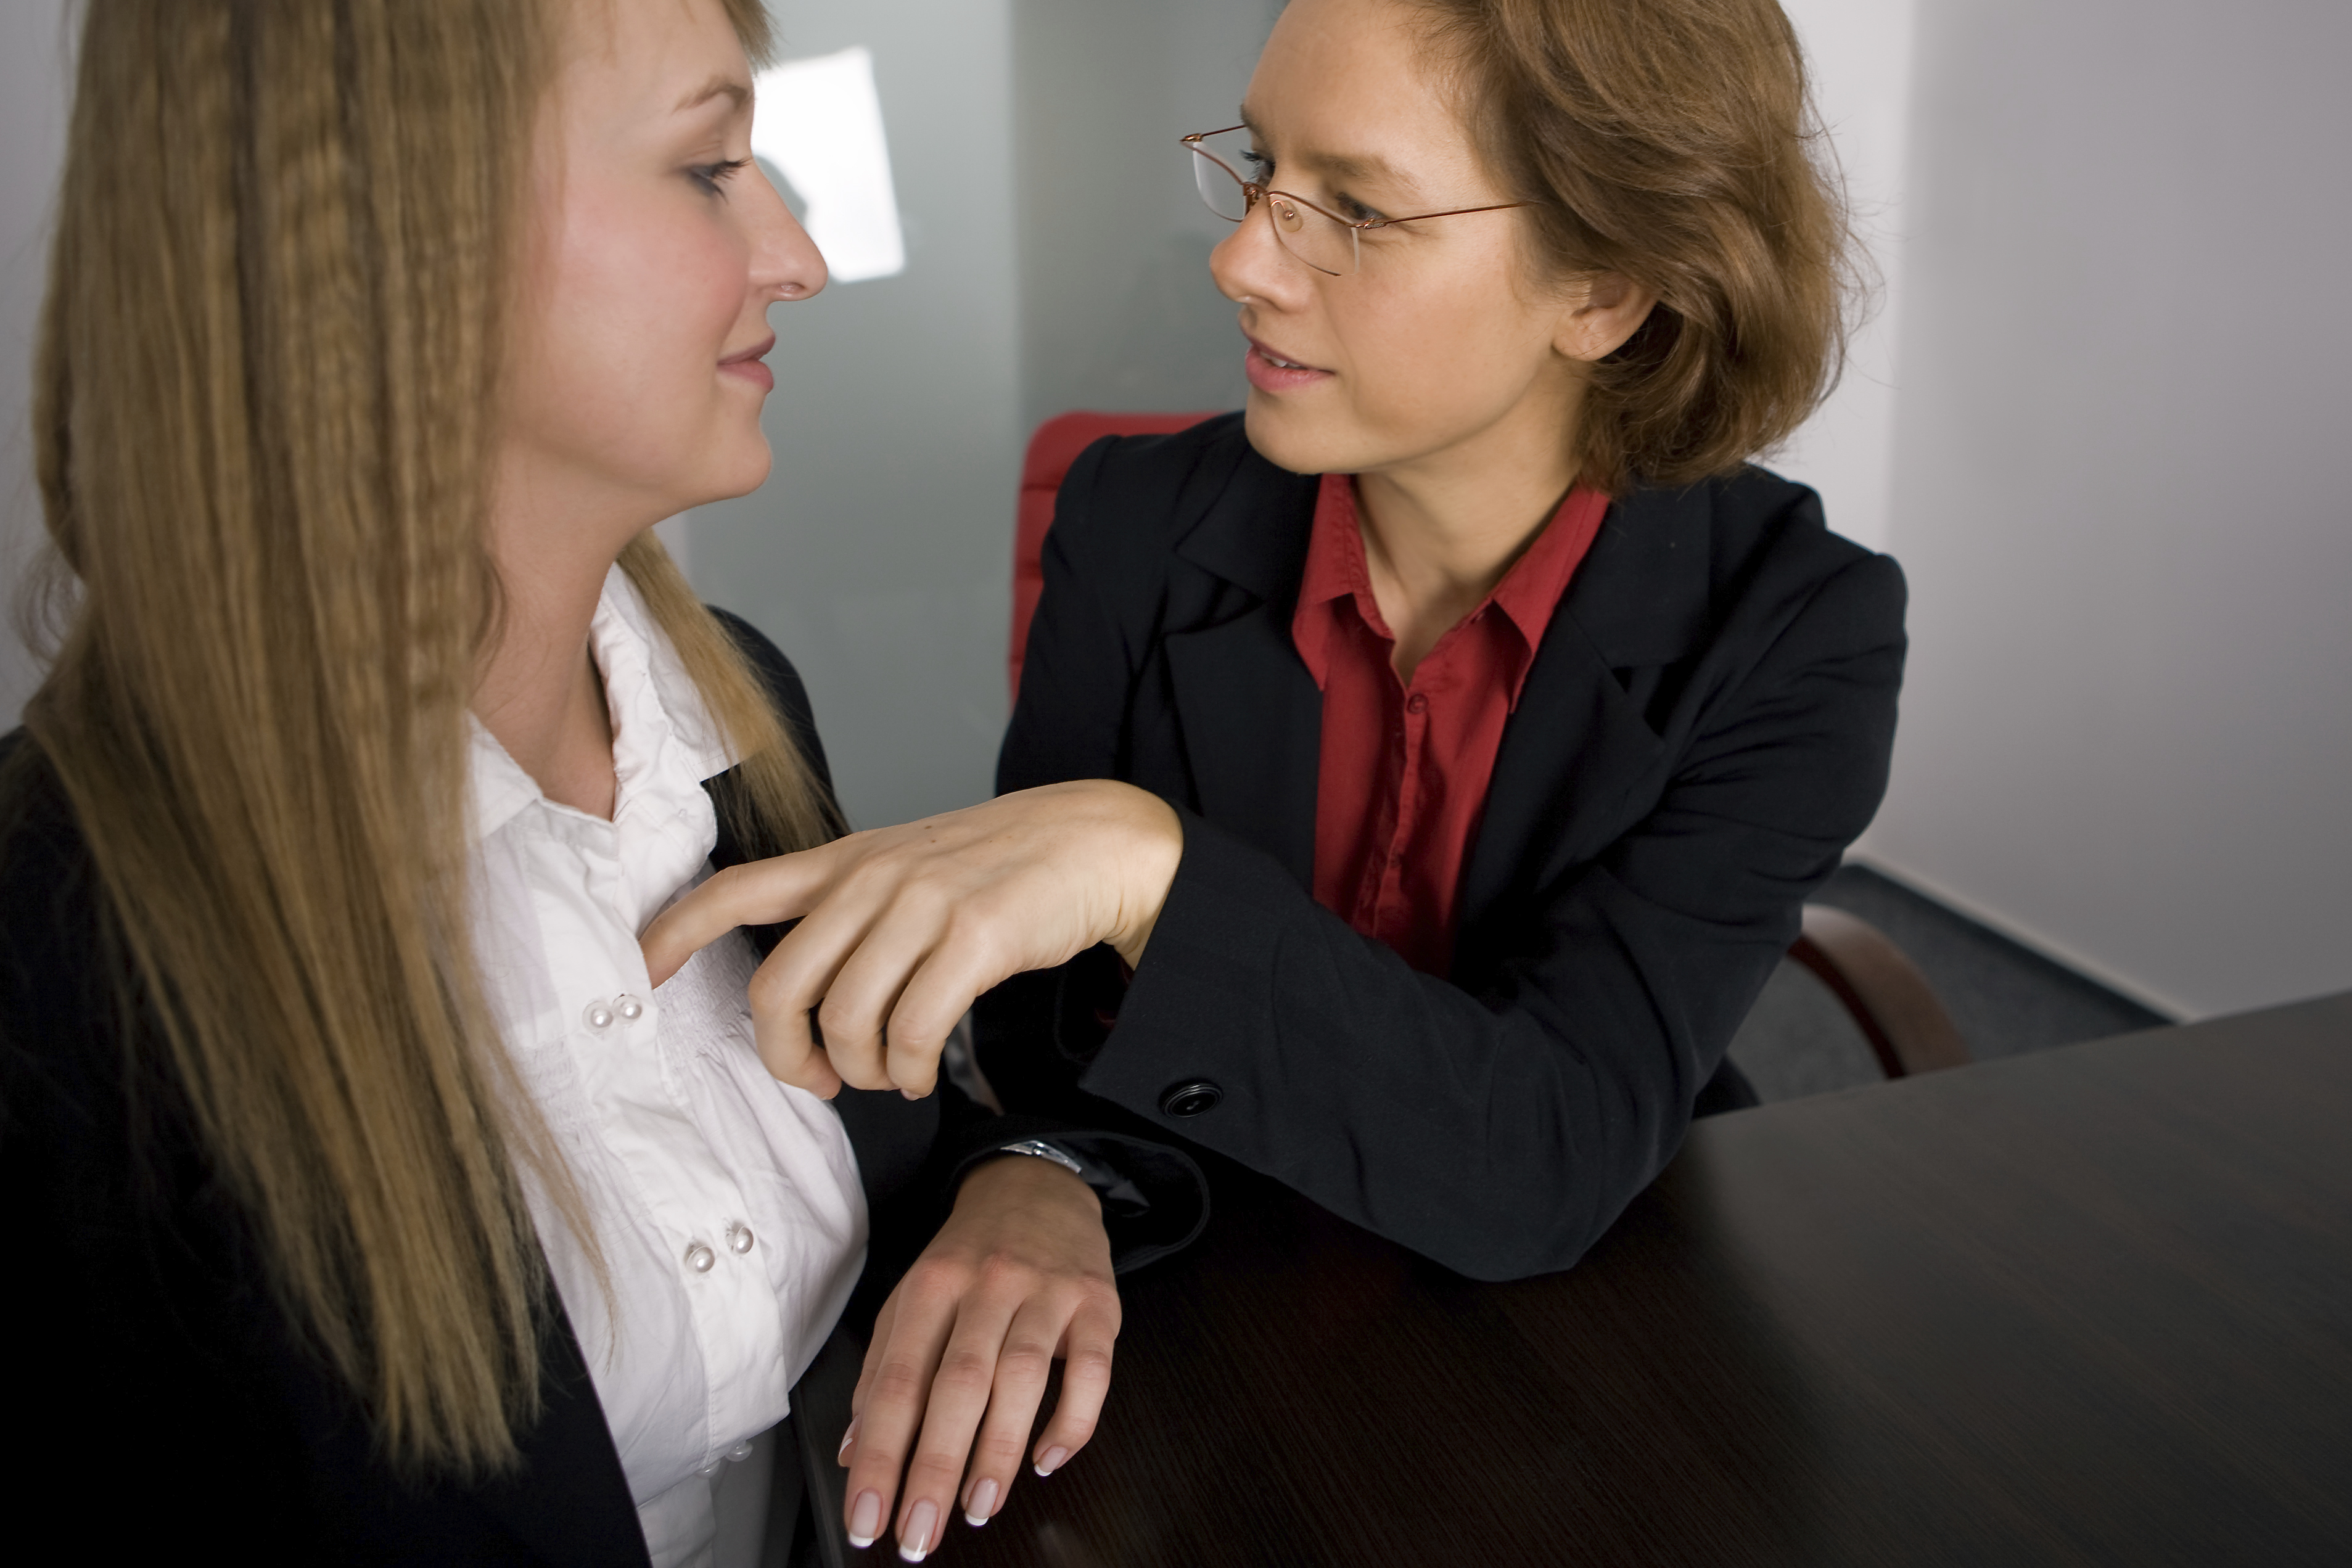 sexual harrasment in the work place Sexual harassment in the workplace is an umbrella term that encompasses a range of unwanted behaviors this includes nonphysical harassment, including suggestive remarks and gestures, or requests.